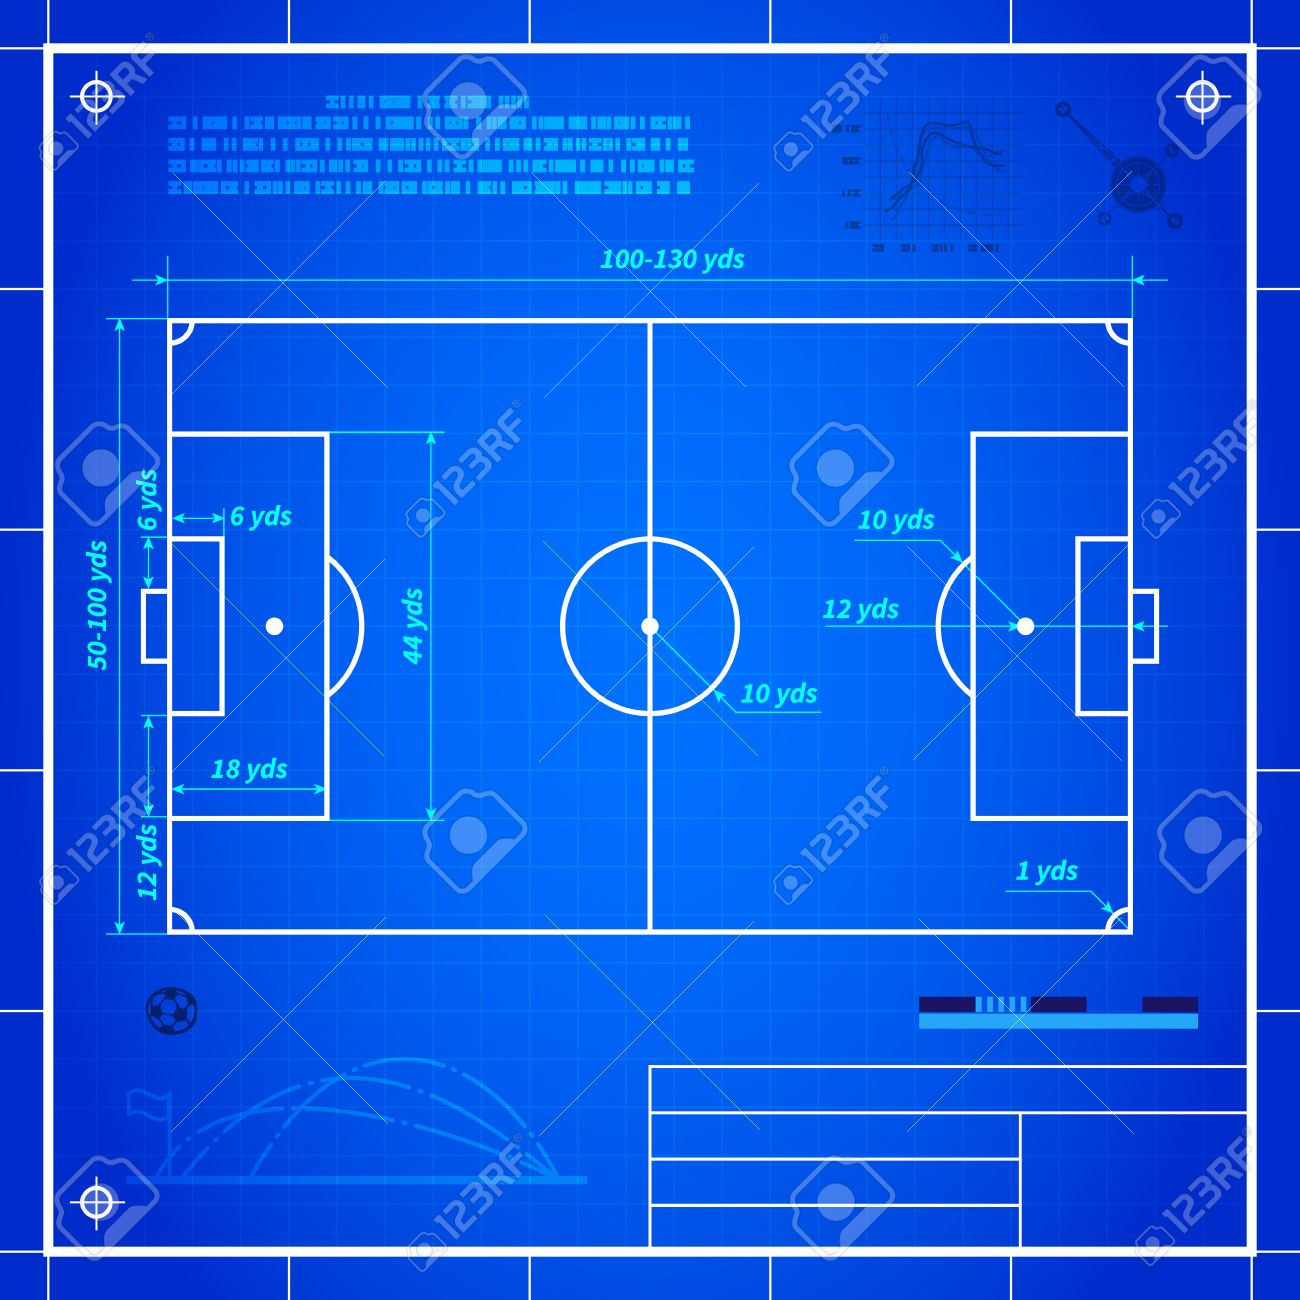 Soccer Or Football Field Measurements Blueprint Technical Drawing Royalty Free Cliparts Vectors And Stock Illustration Image 43542081